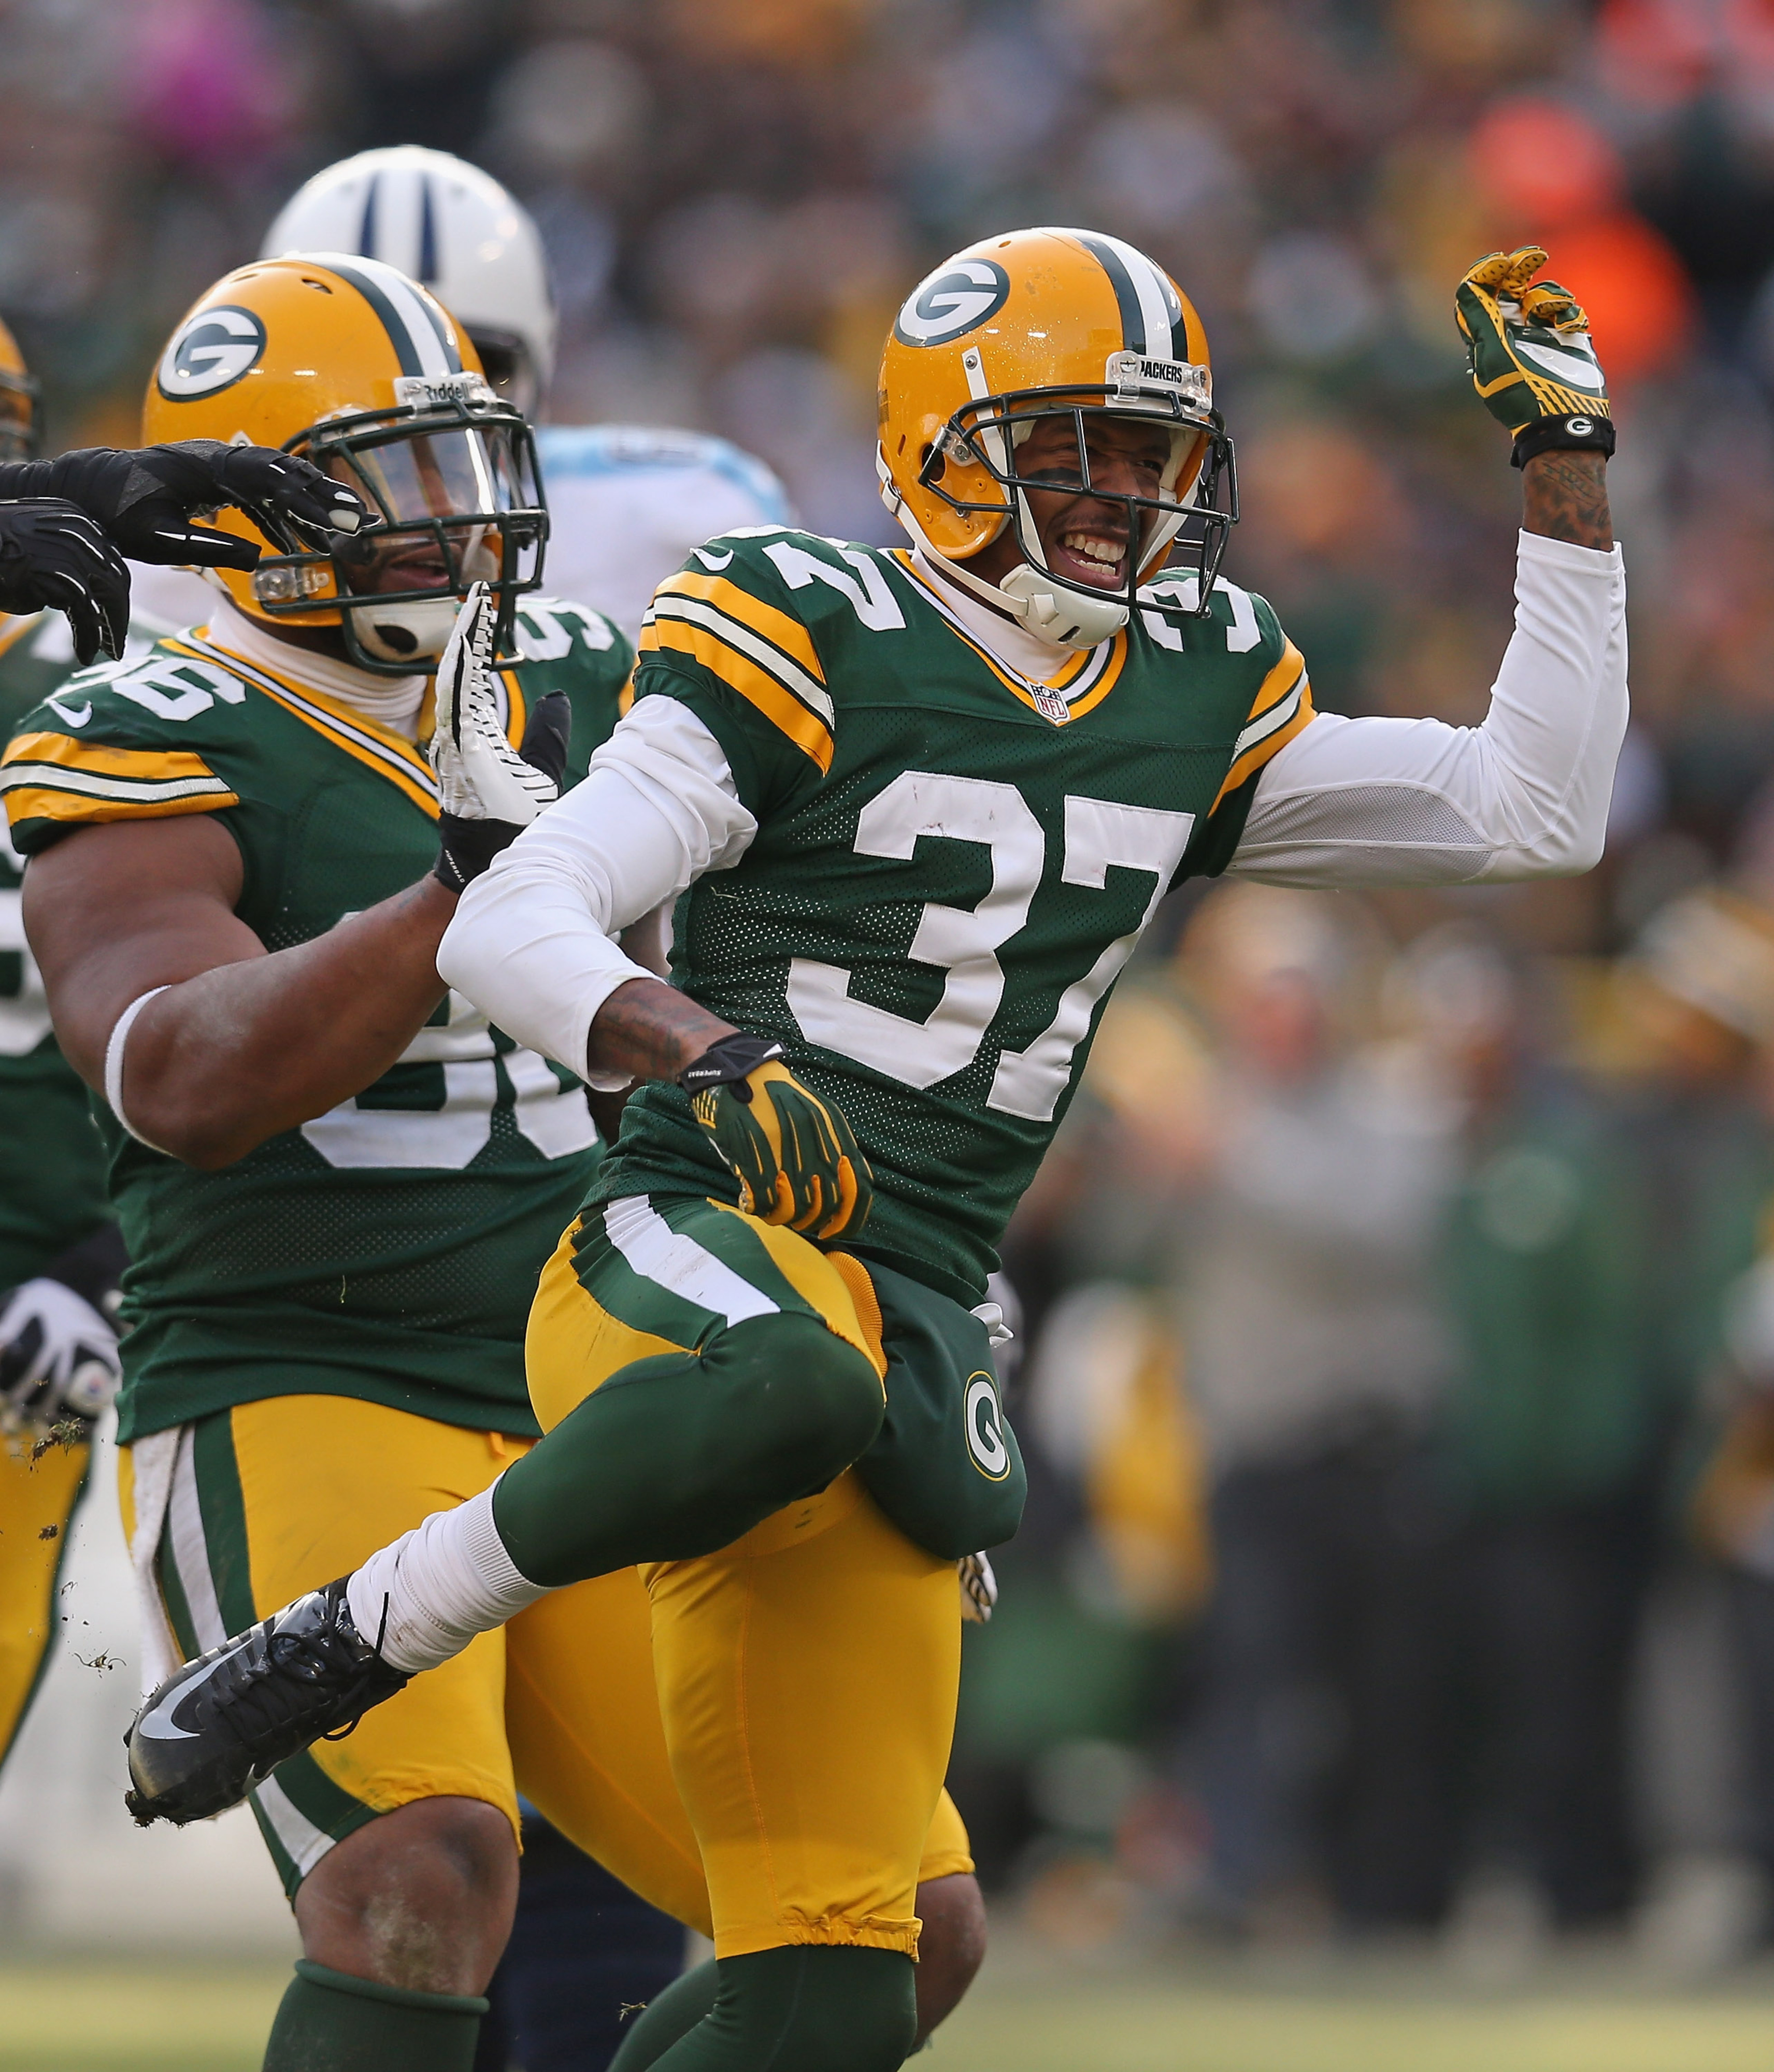 Mike Neal and Sam Shields